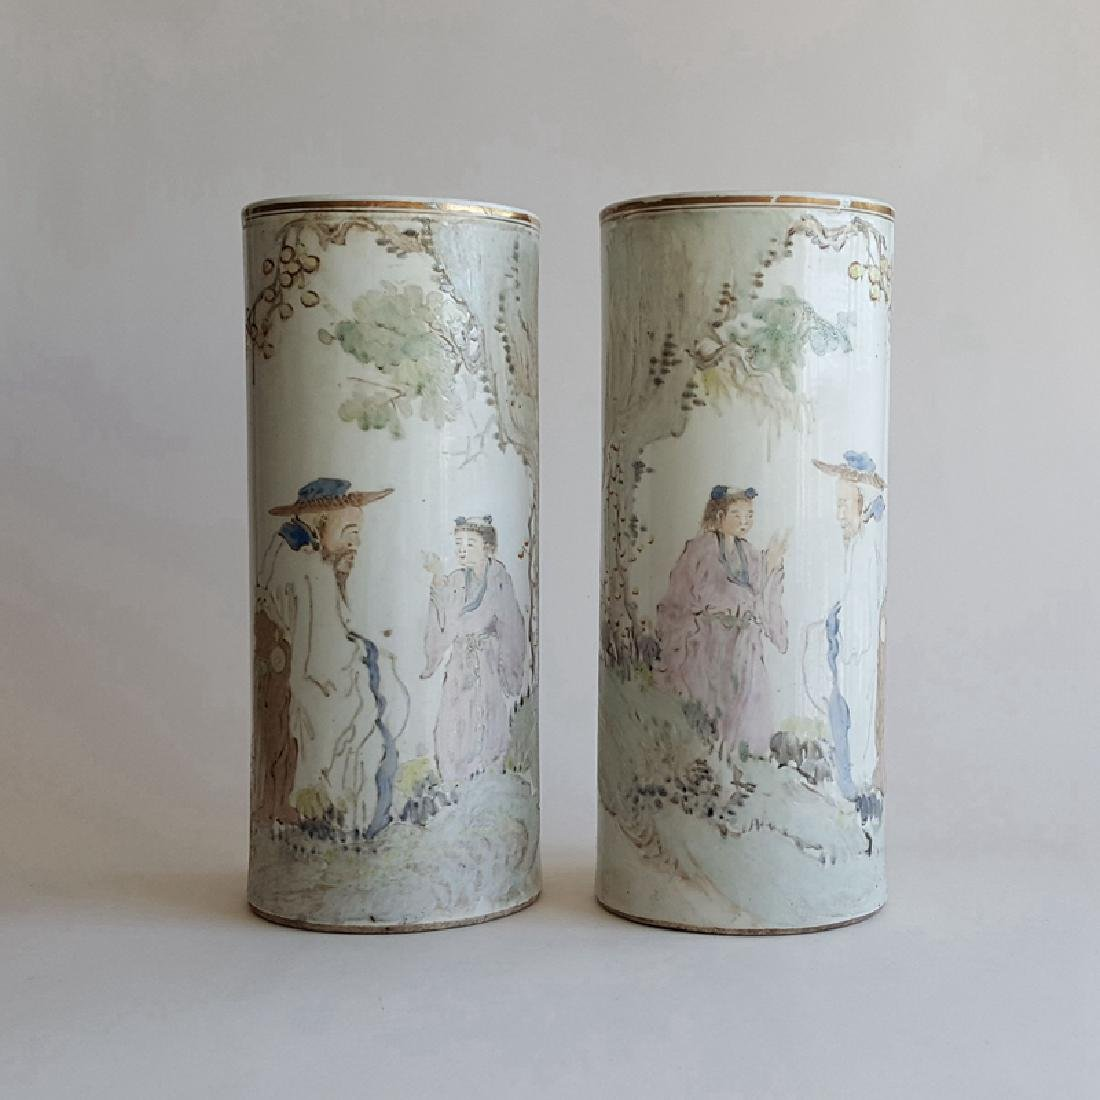 Pair Chinese Qiangjiang Color Porcelain Vases,Qing